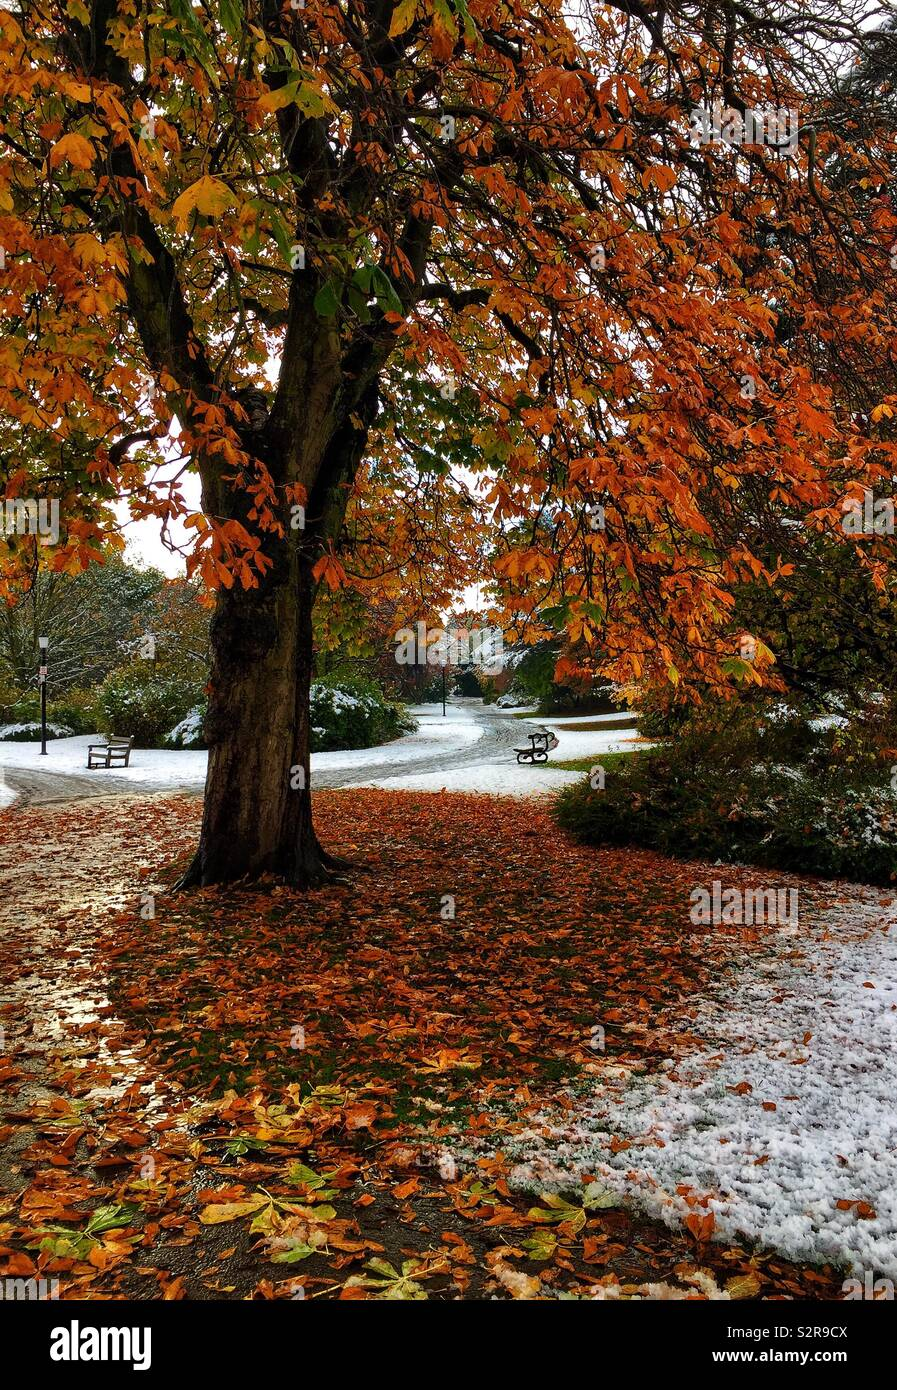 Vivid autumn colours contrast with the first sprinkling of snow in Valley Gardens Harrogate - Stock Image